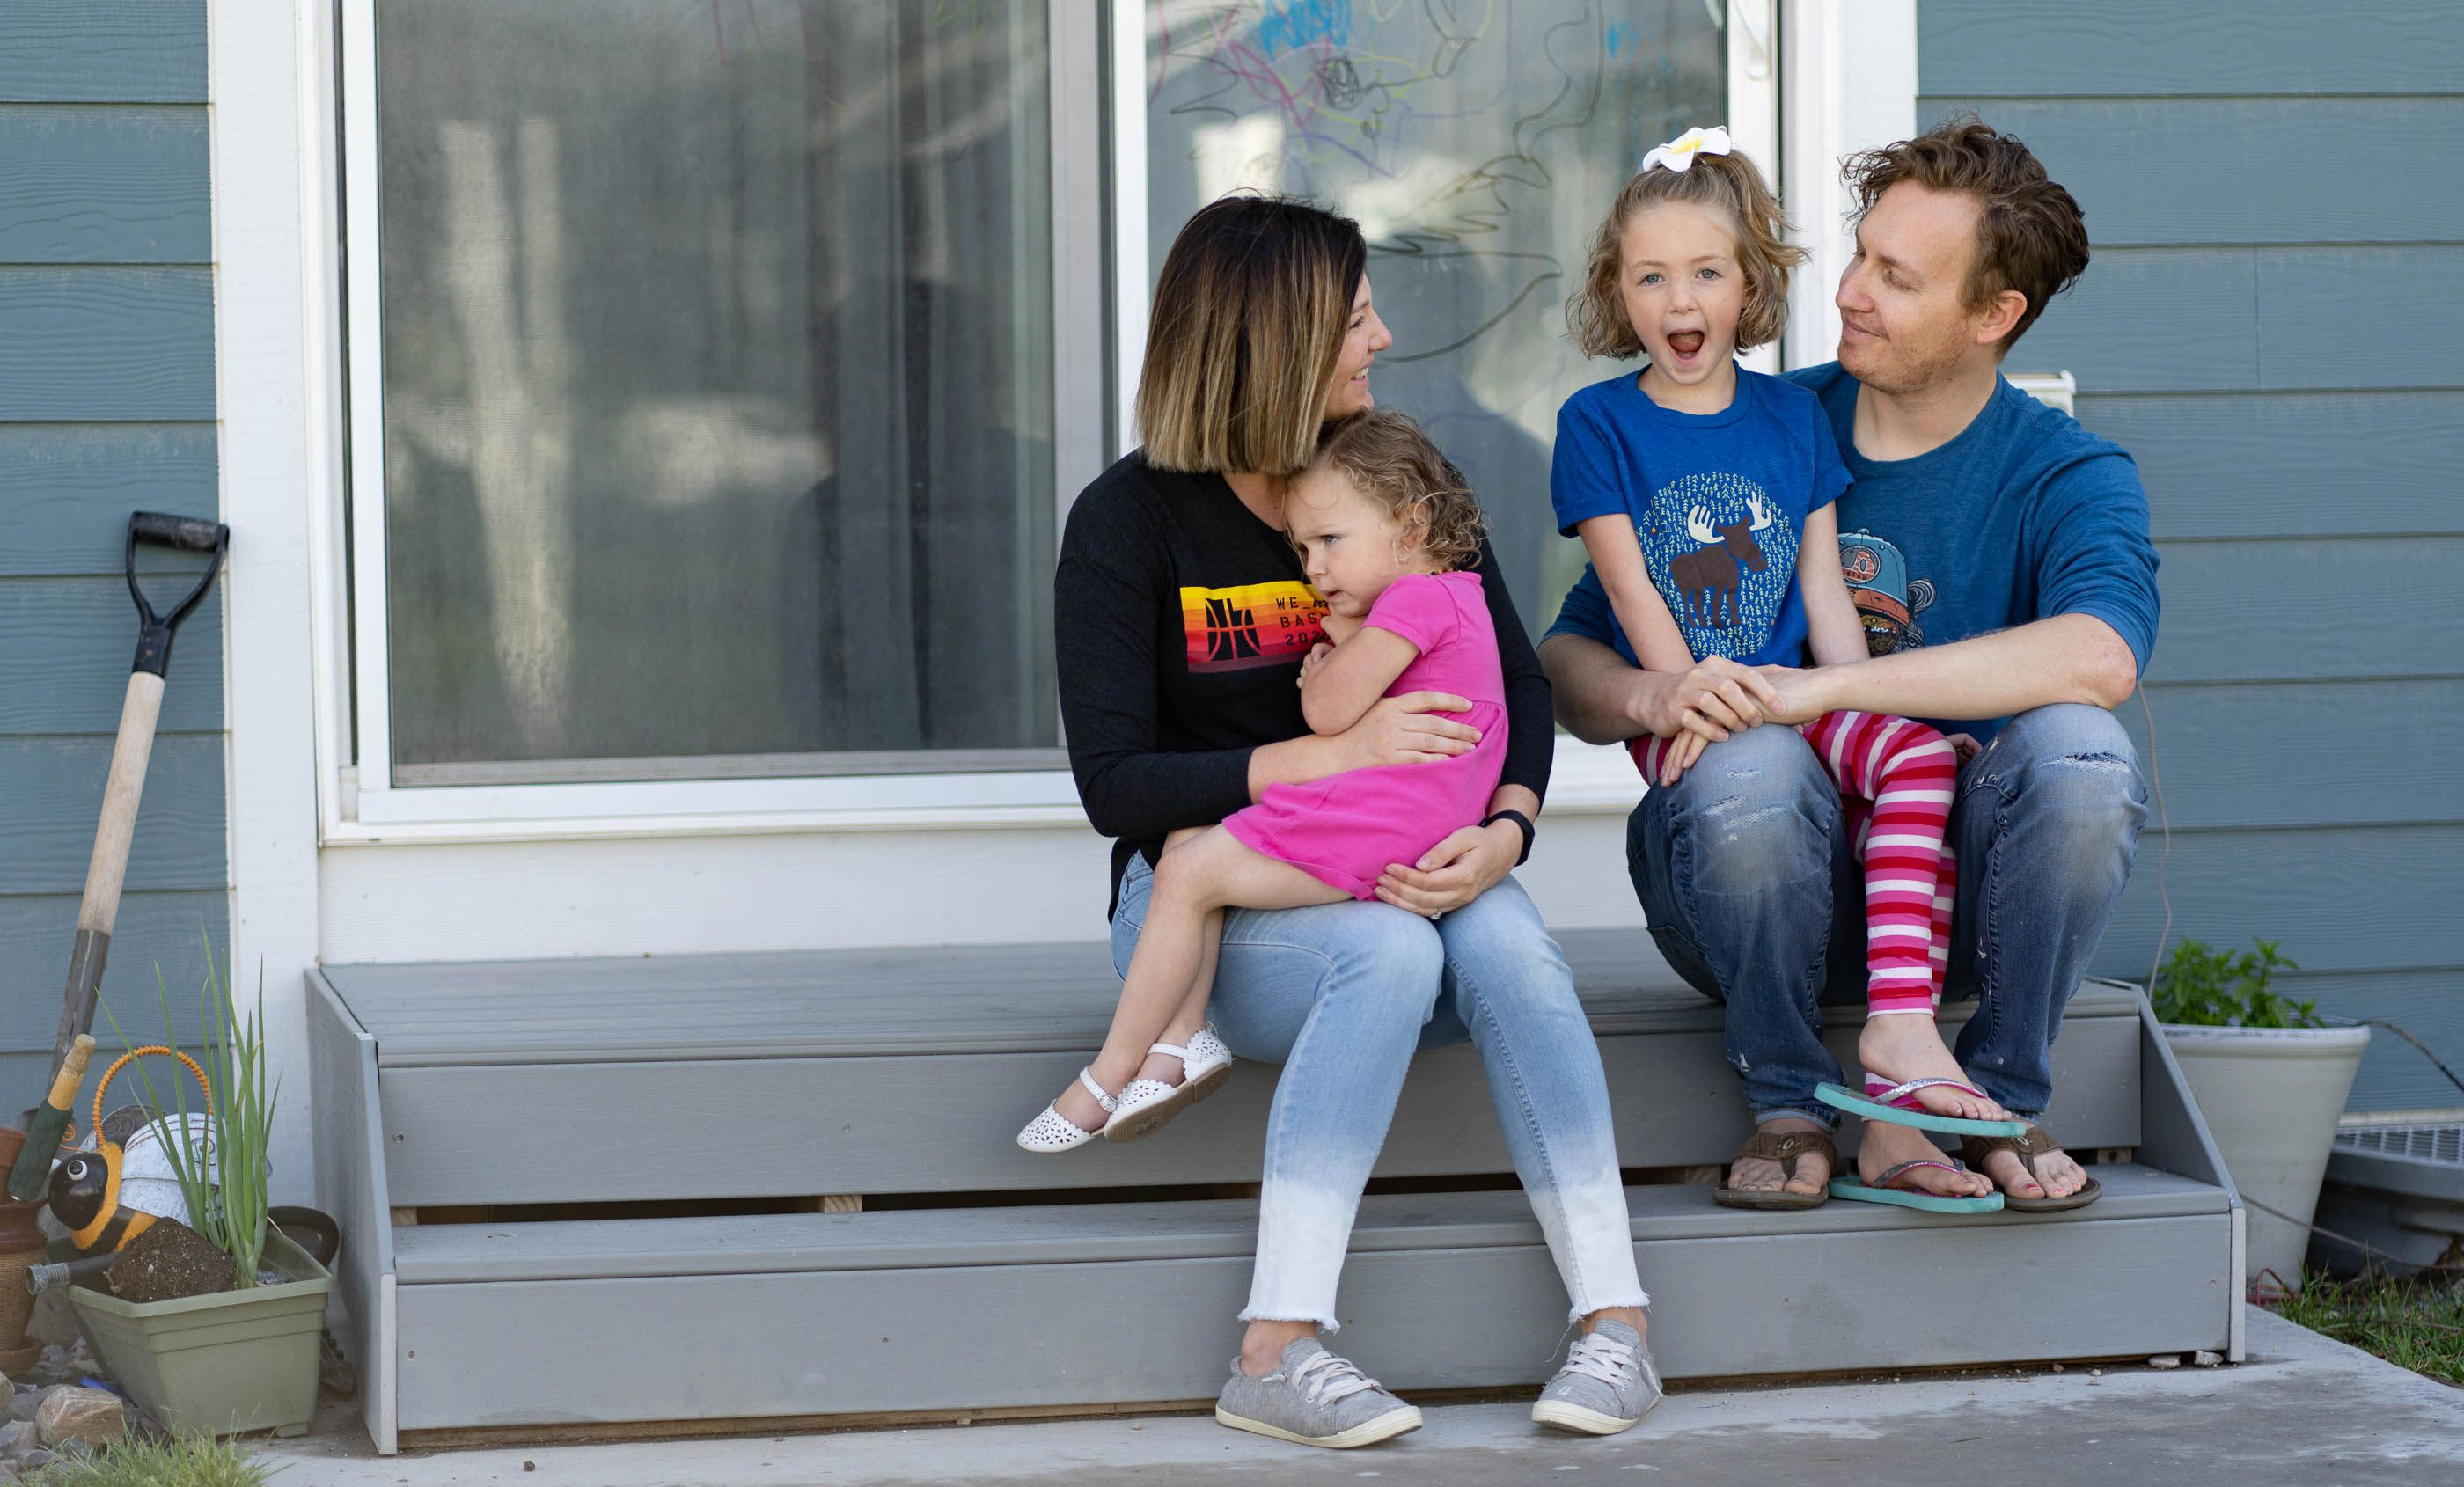 (Francisco Kjolseth | The Salt Lake Tribune) Justin and Amy Beagley spend time with their daughters Cora, 5, and Sedona, 2, near their home in Bluffdale on Wednesday, May 26, 2021. The young couple wanted to have kids shortly after they married in 2012 but worried about their finances, so they put it off a few years.